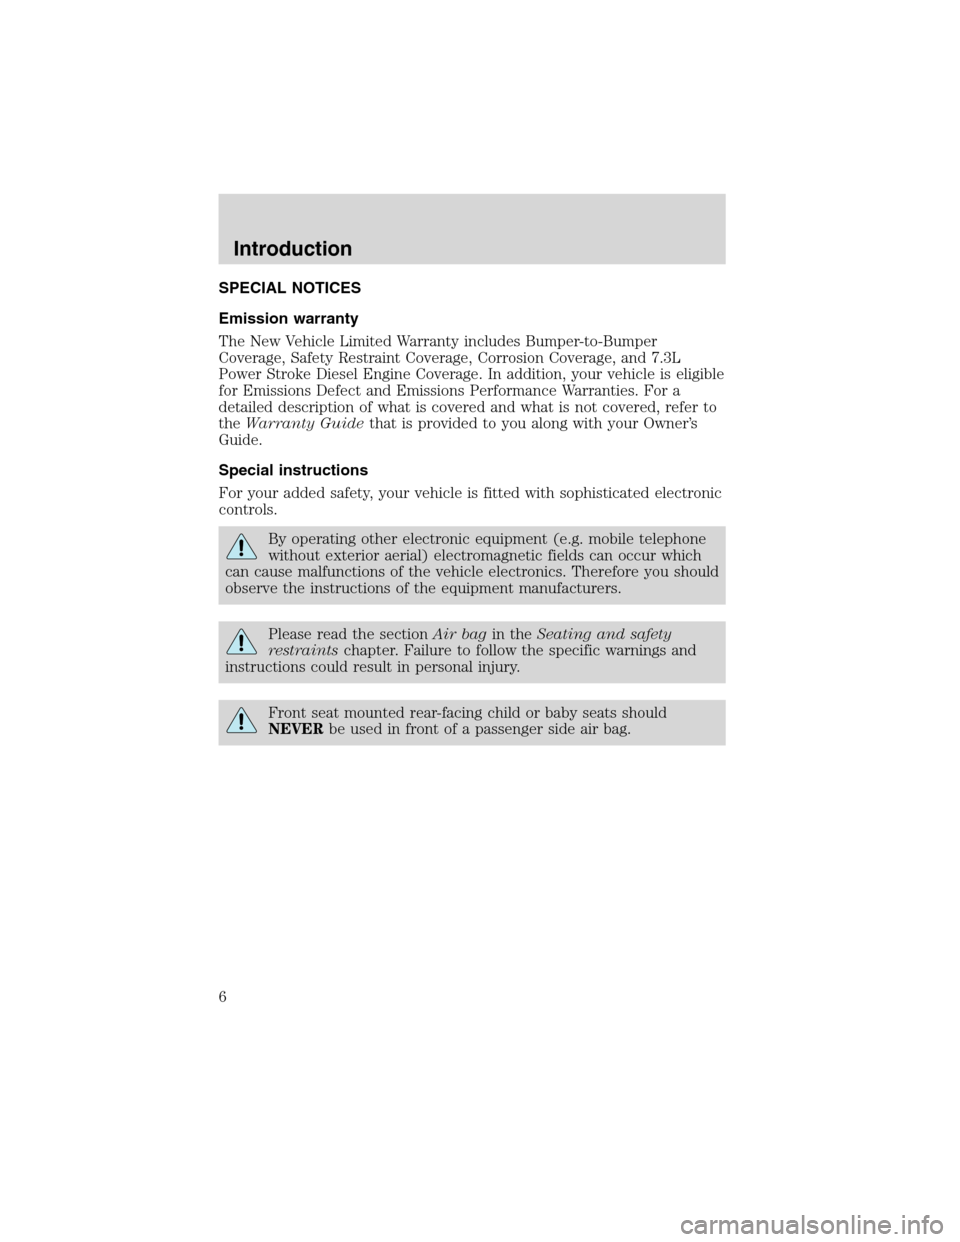 FORD EXCURSION 2004 1.G Owners Manual, Page 6